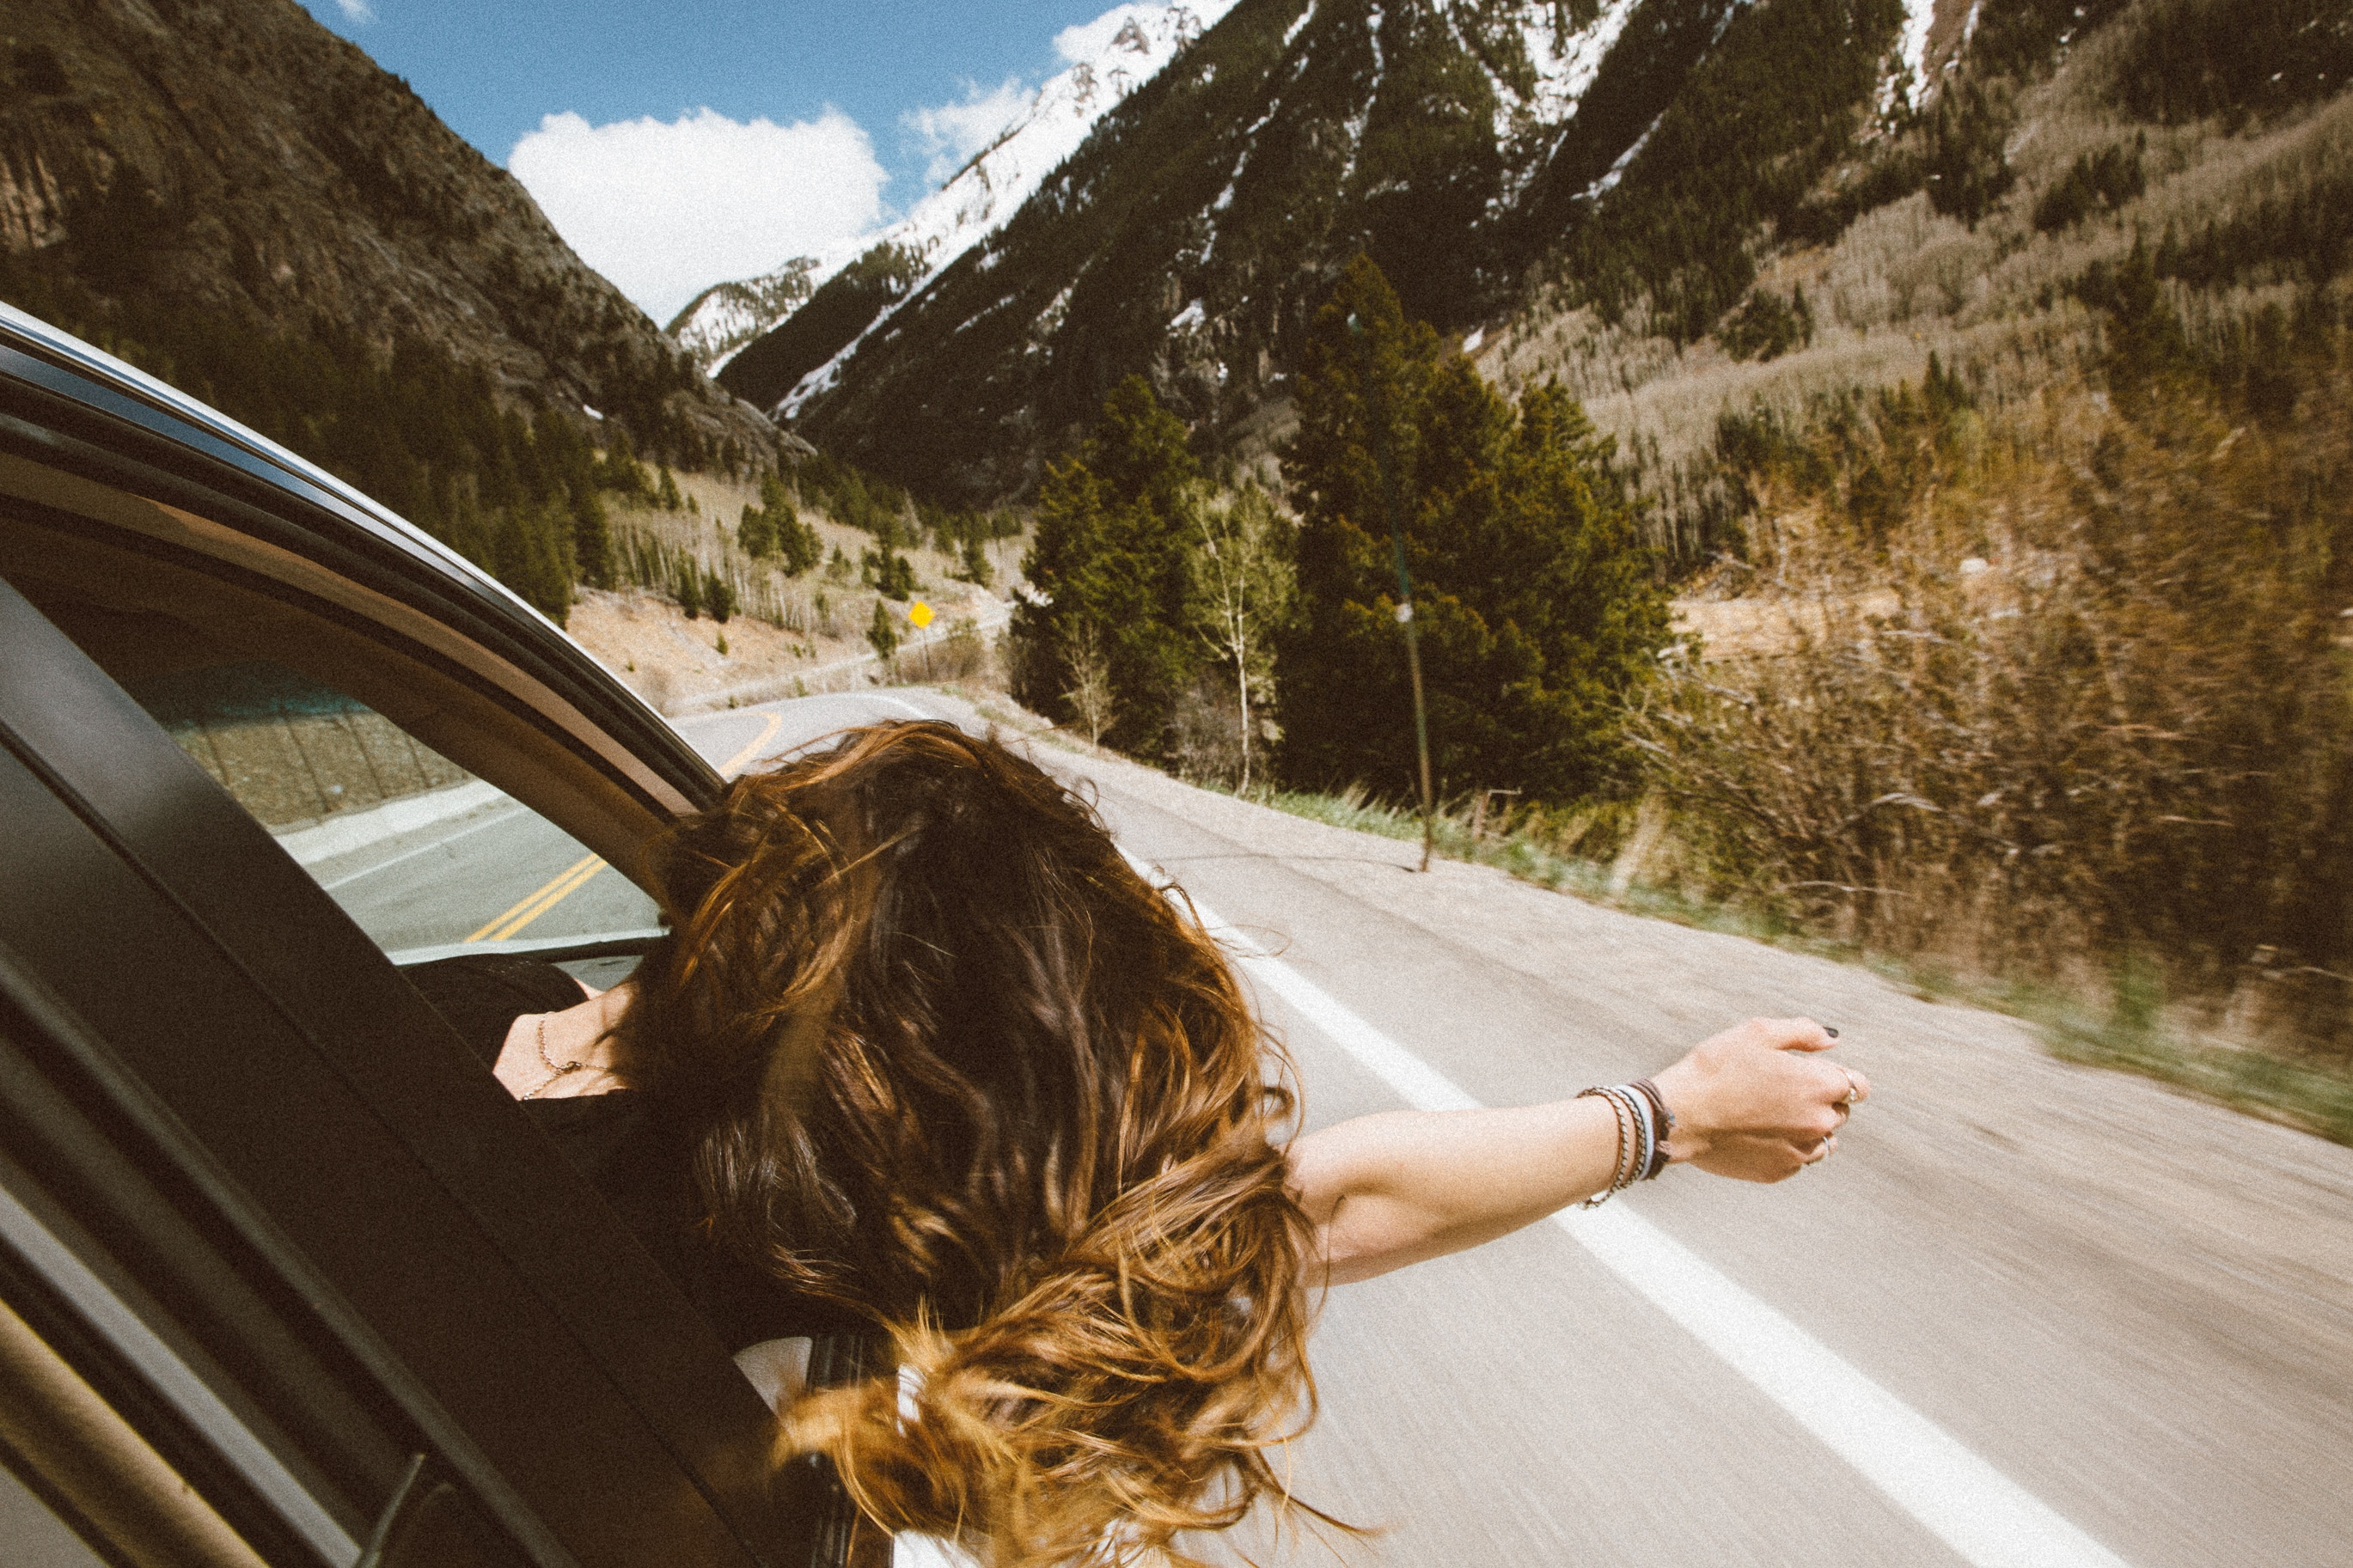 Road Tripping in the Mountains   Barbara Cameron Pix   Food & Travel Photographer